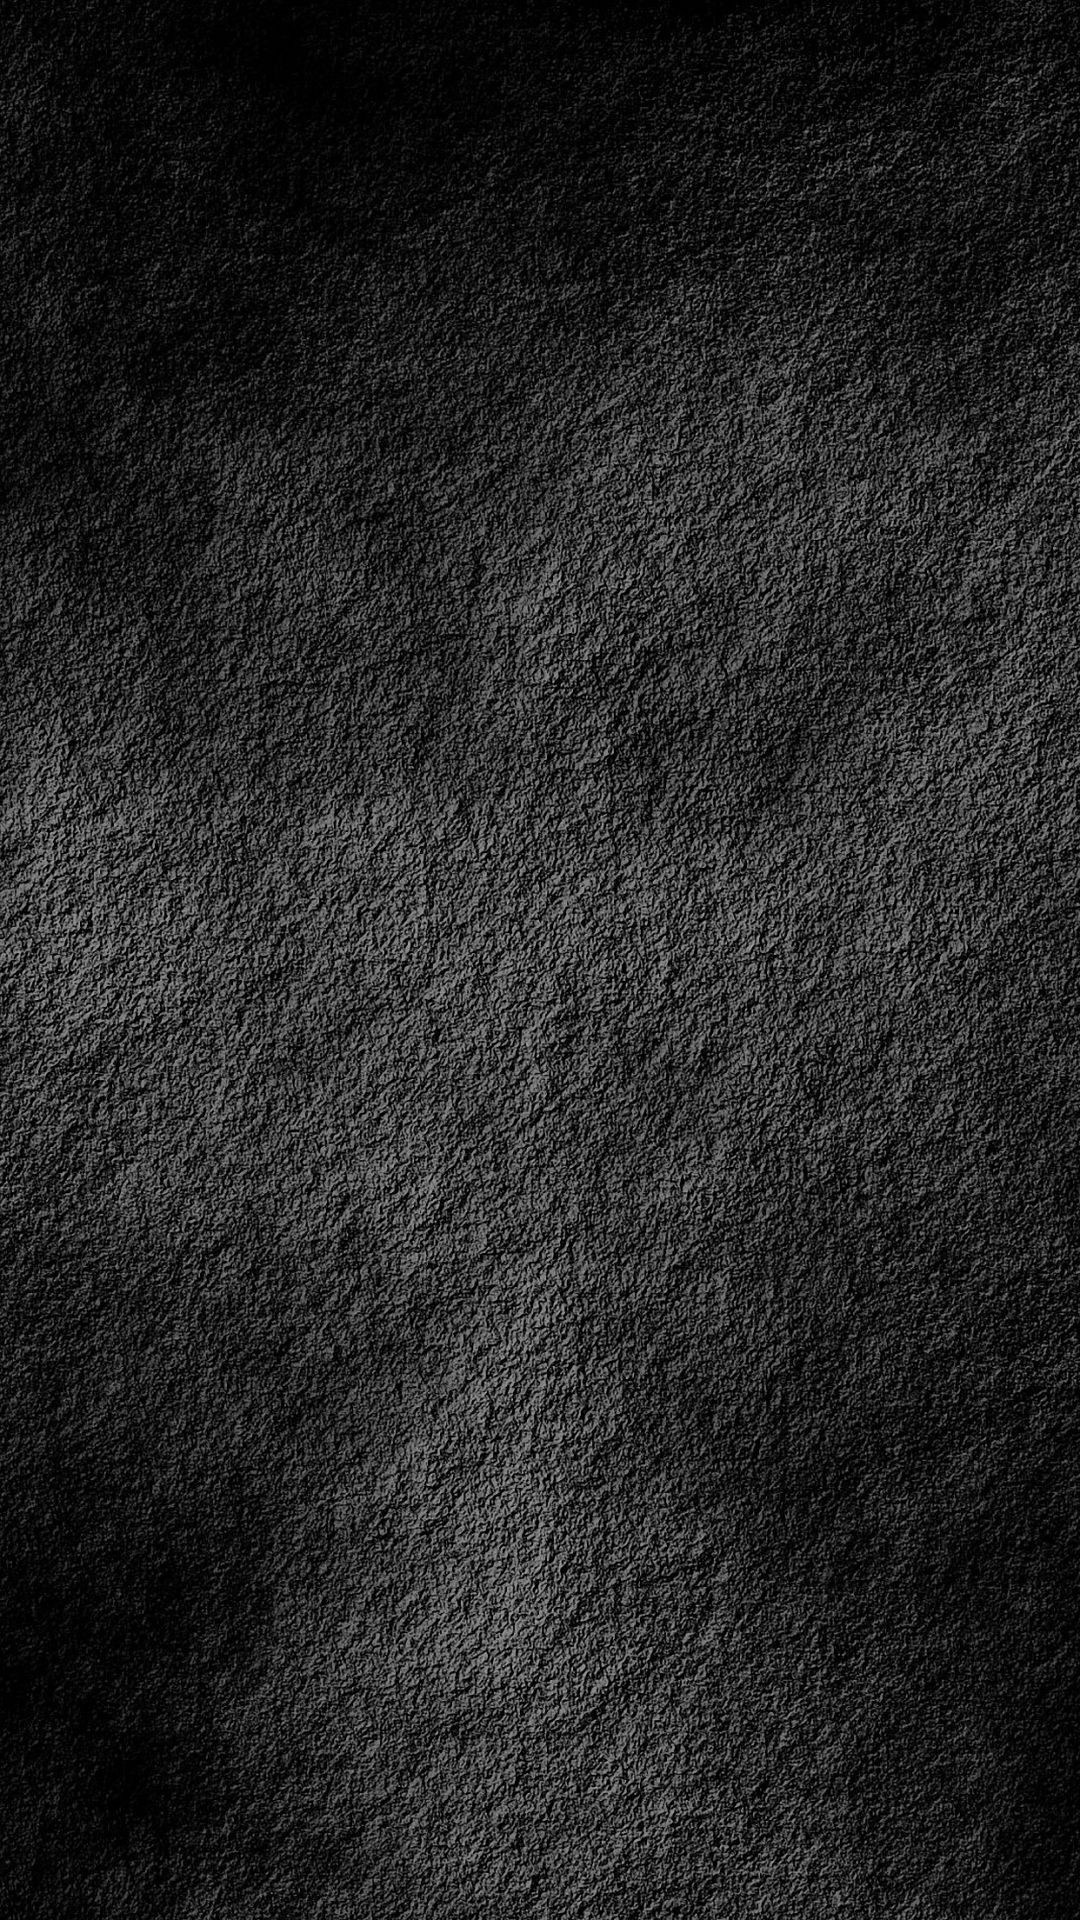 Dark Abstract Iphone Wallpapers Top Free Dark Abstract